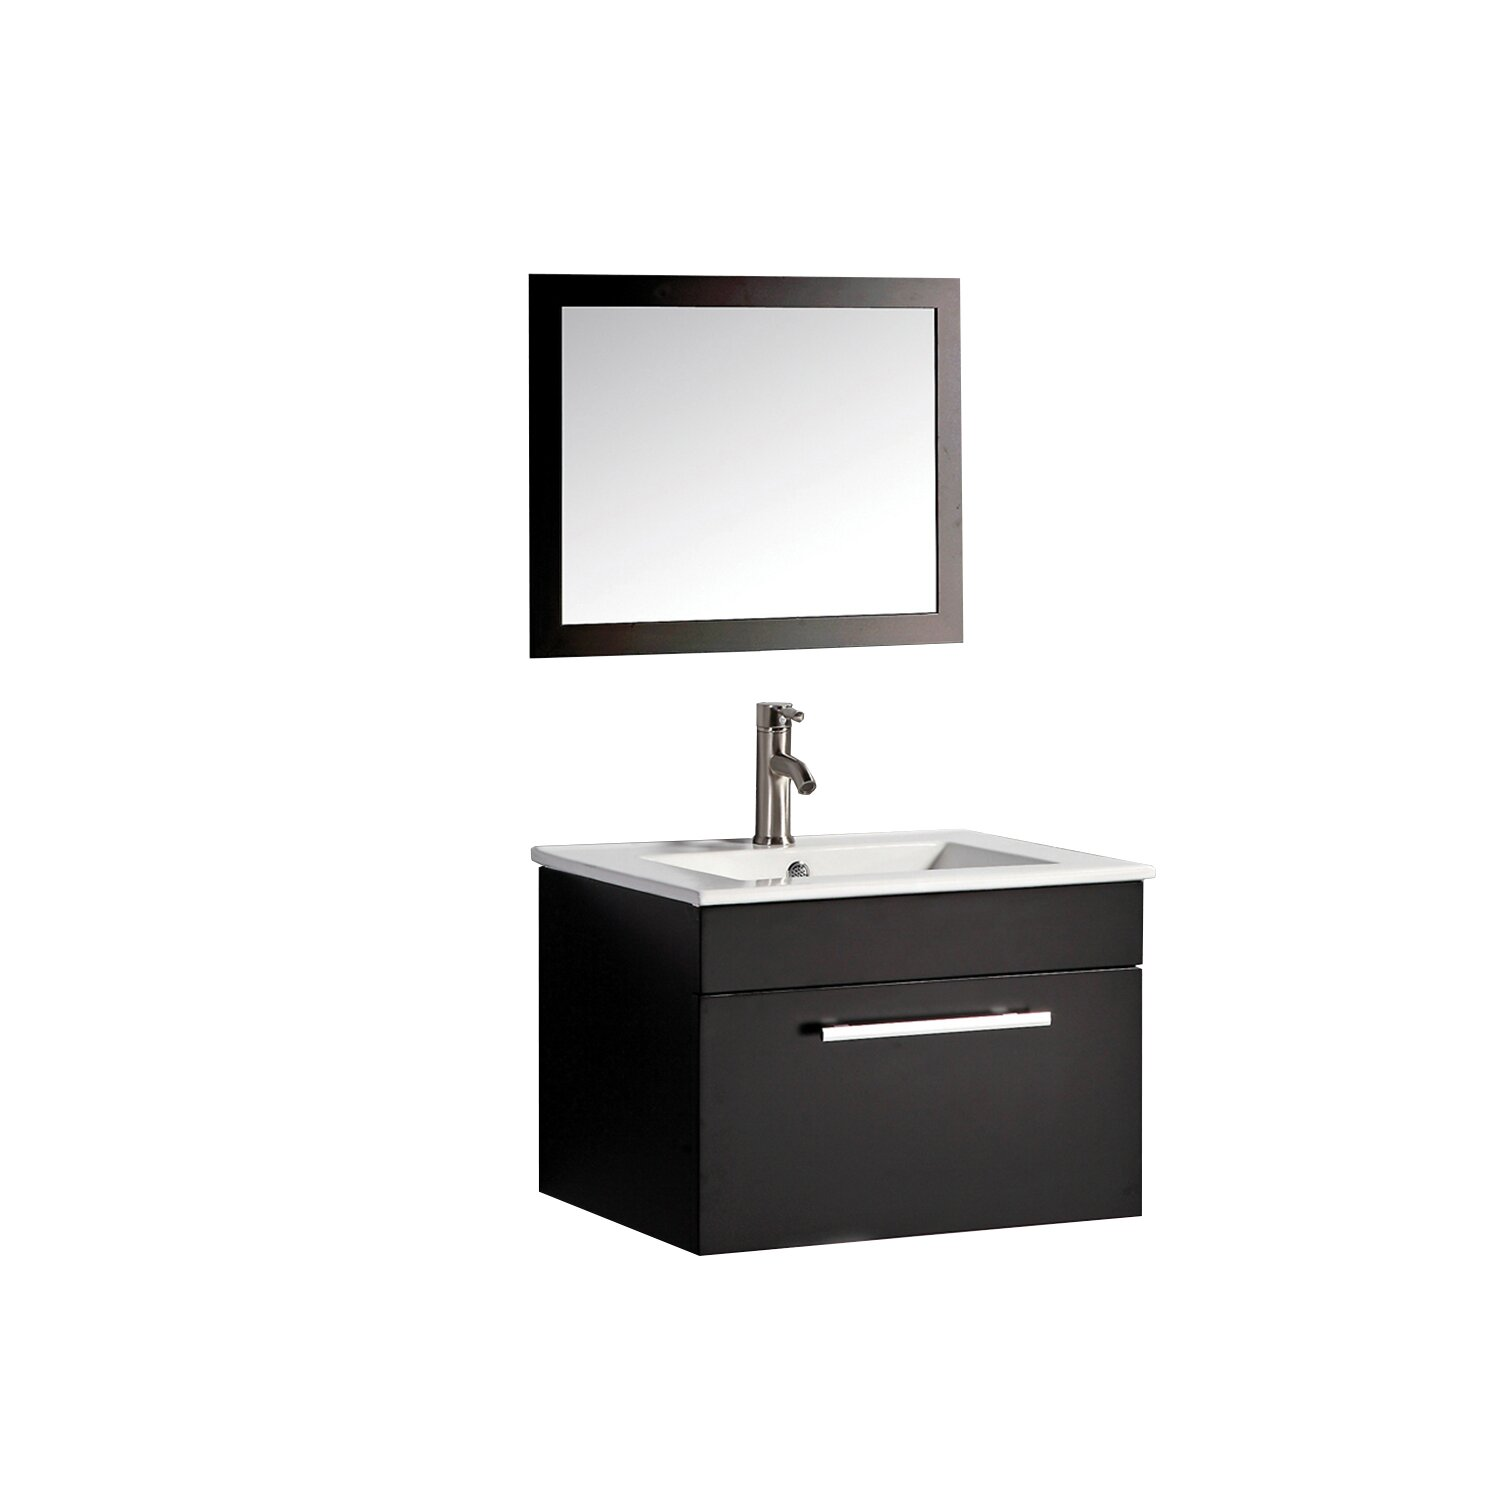 Mtdvanities nepal 24 single sink bathroom vanity set with for Kitchen sink in nepal